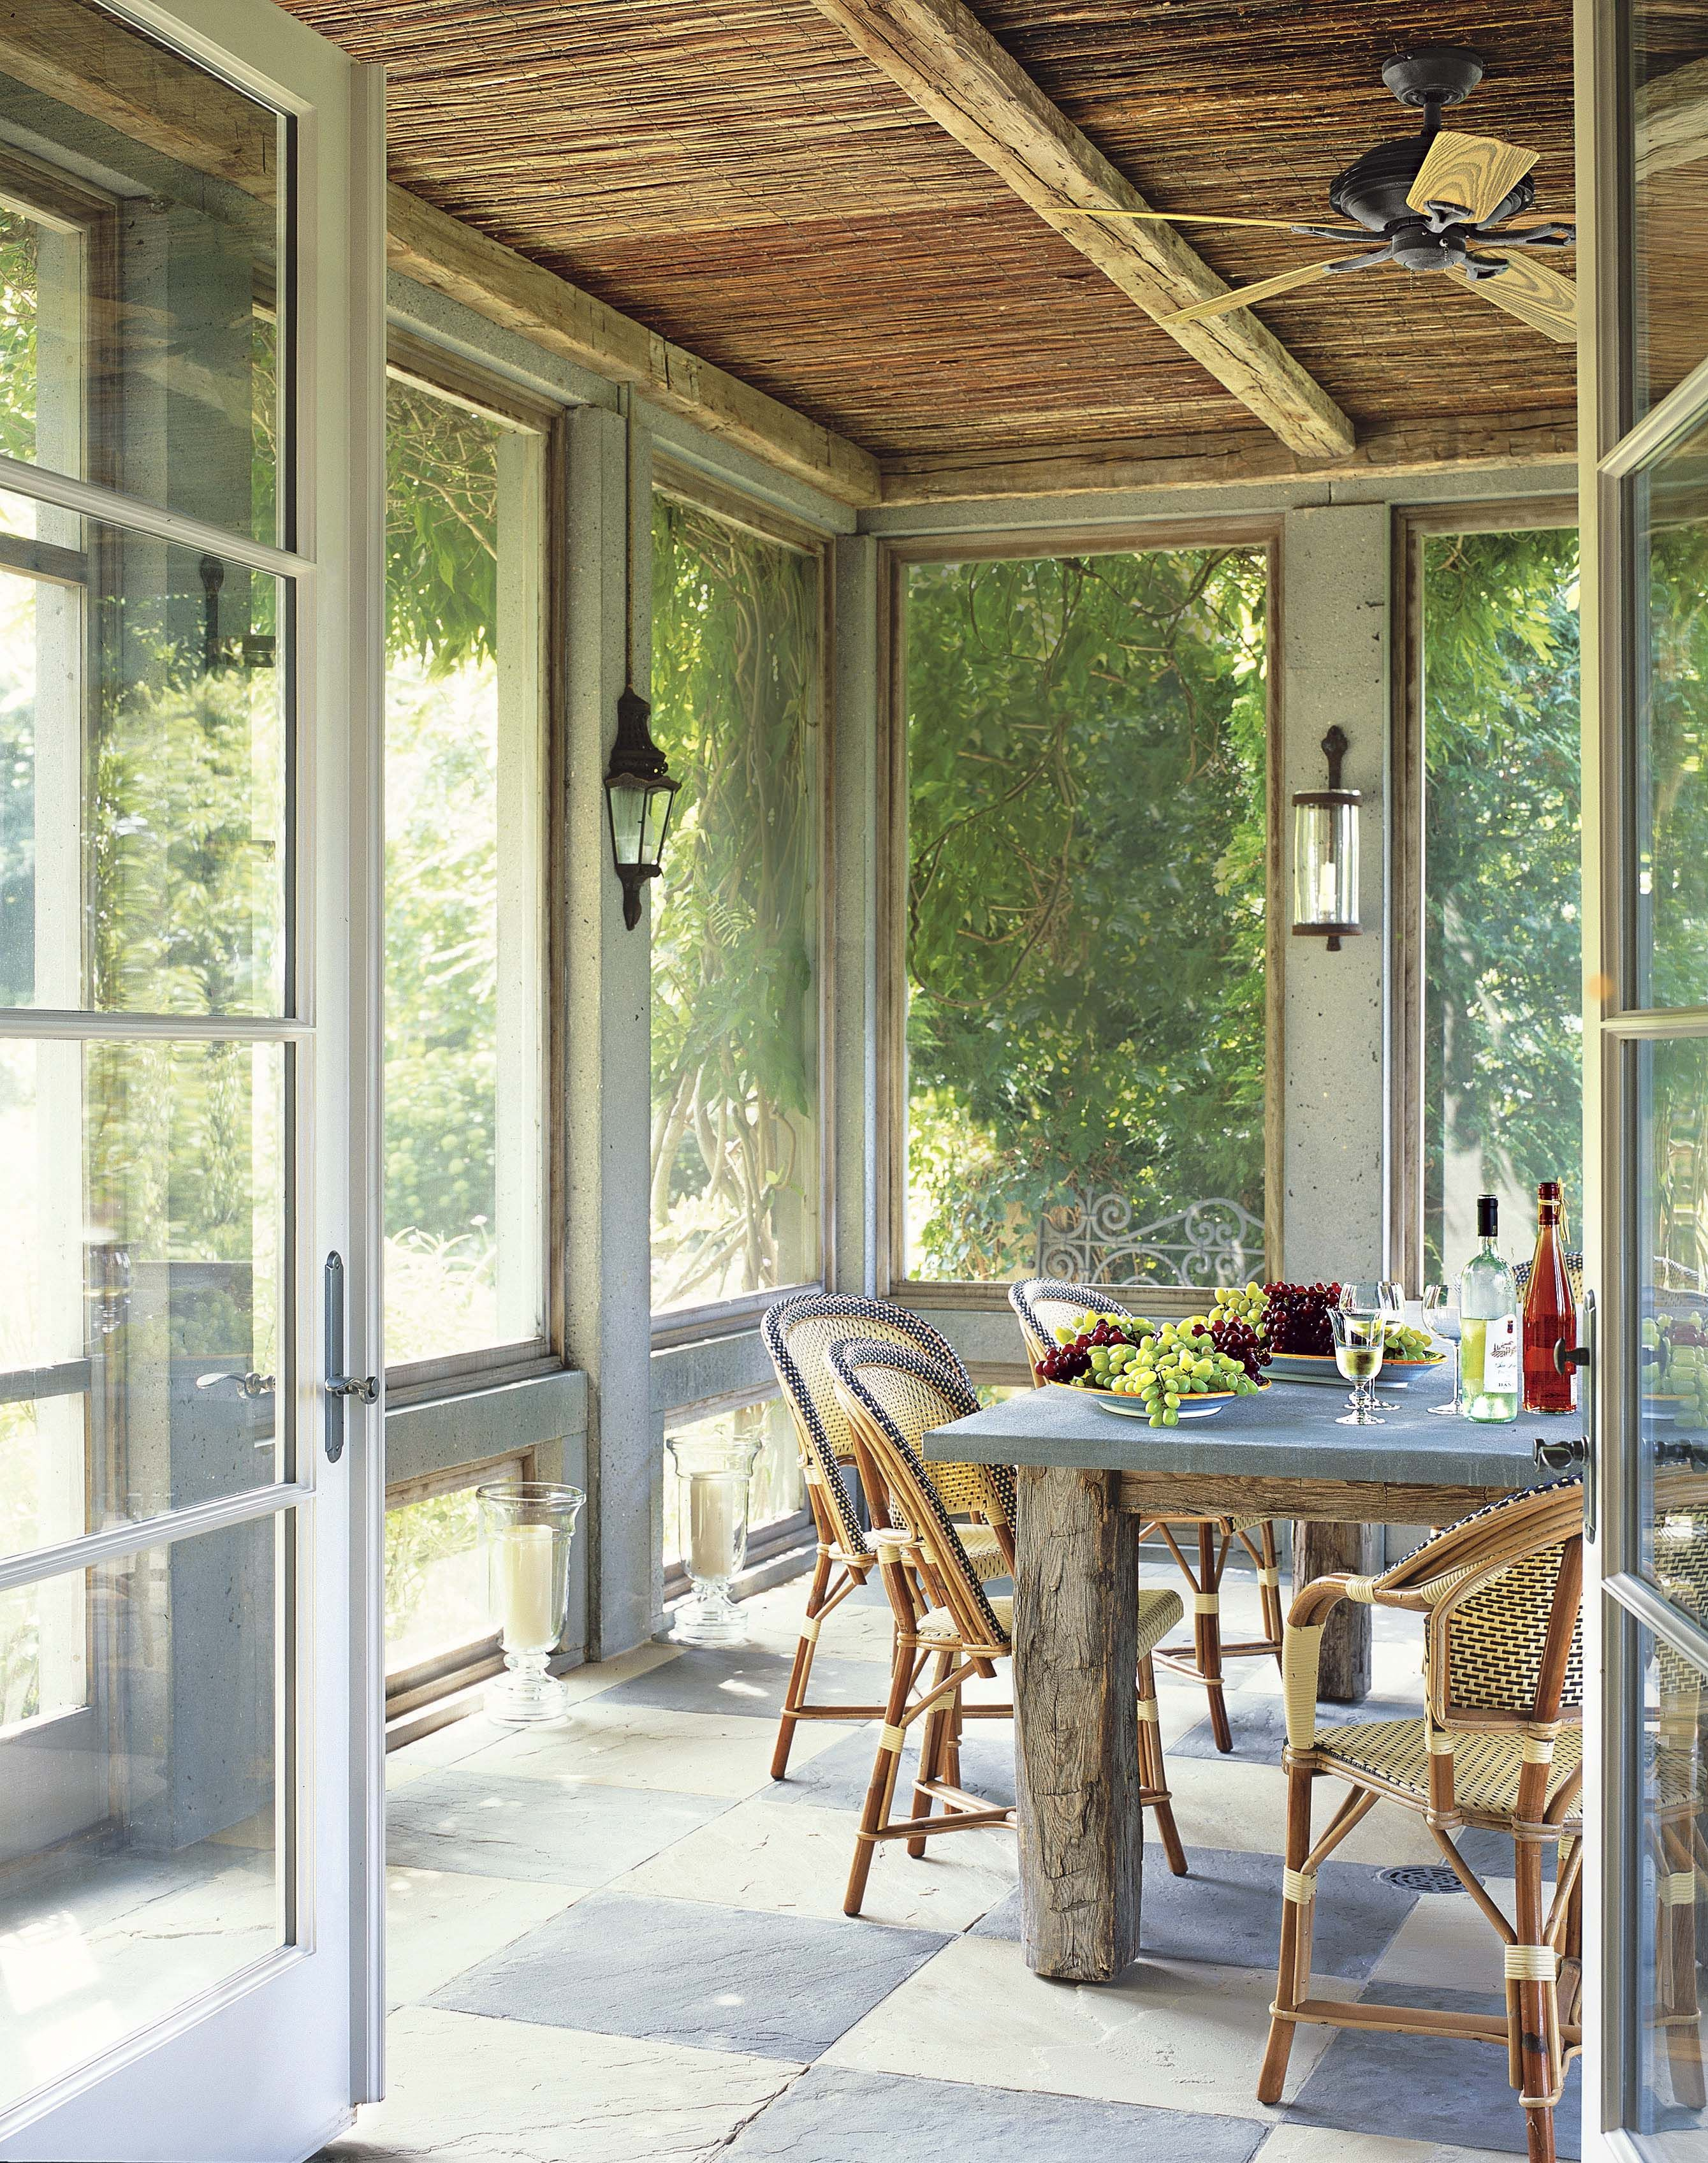 The Guide To Screened In Porches How To Build A Screened In Porch According To The Experts